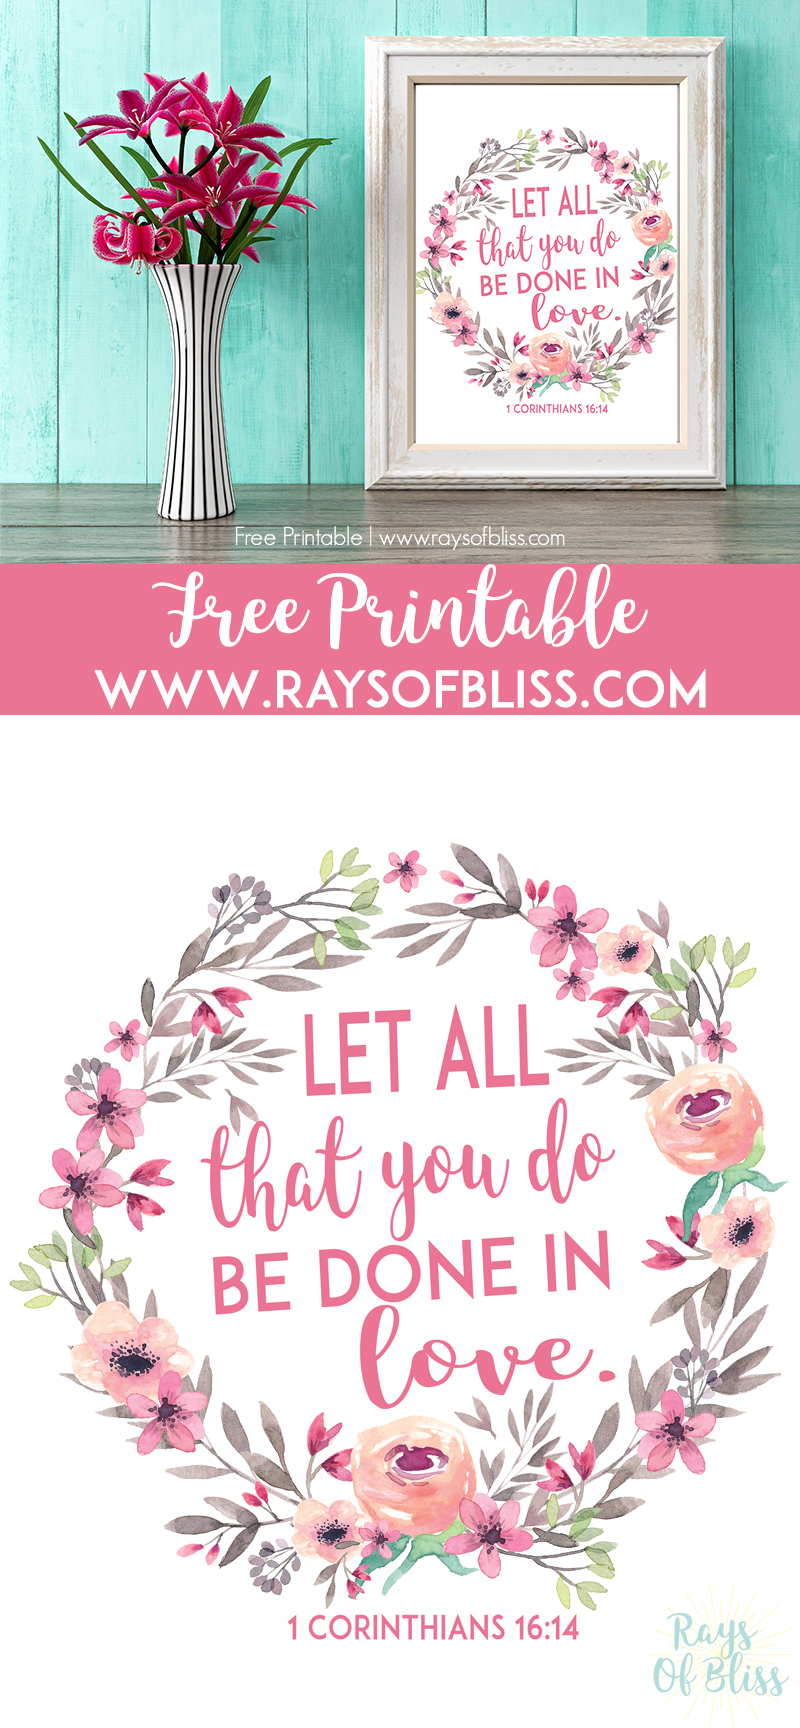 Agile image in free printable bible verses to frame